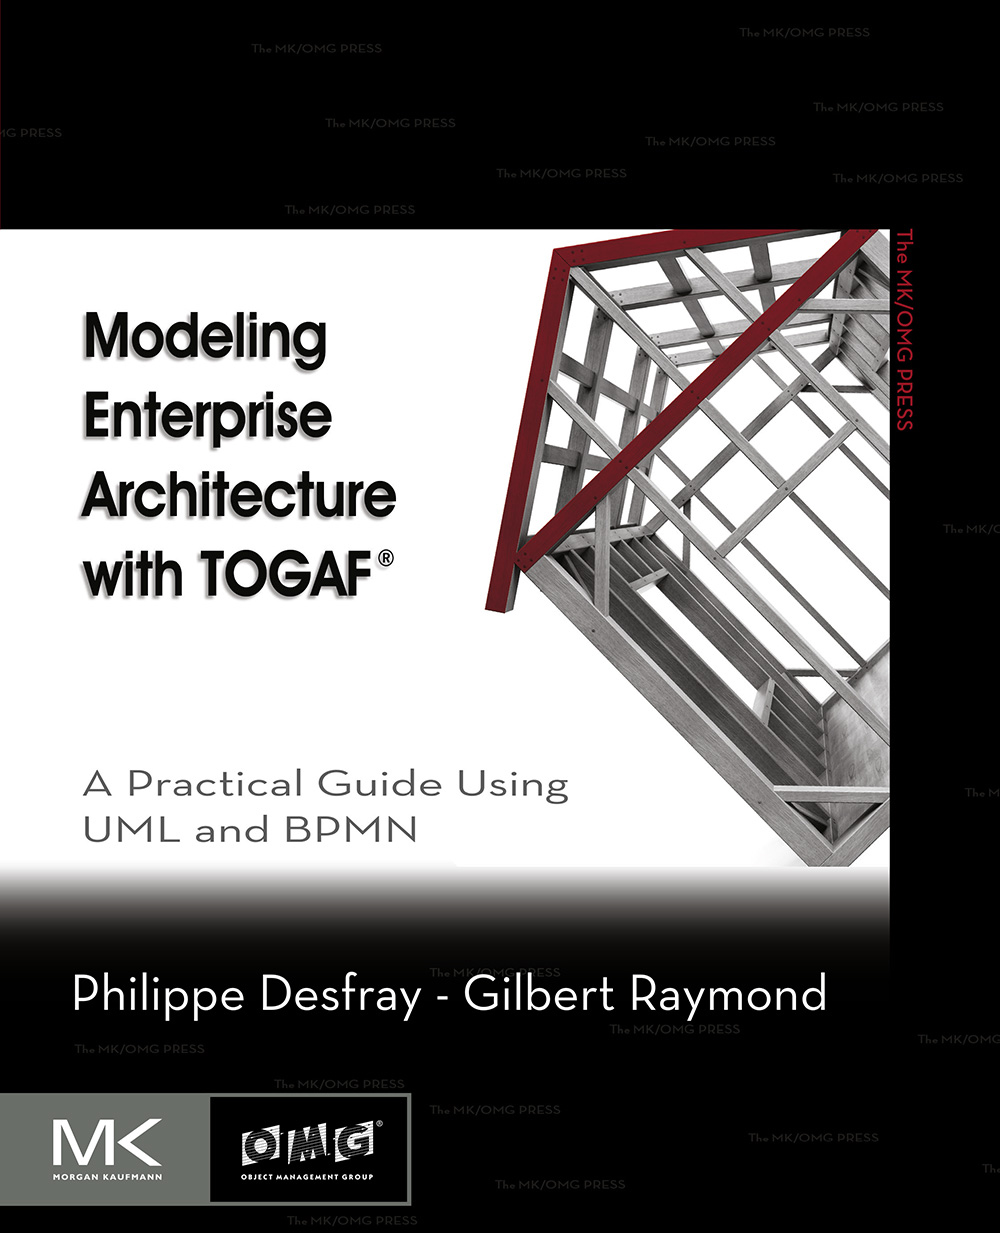 Modeling Enterprise Architecture with TOGAF A Practical Guide Using UML and BPMN